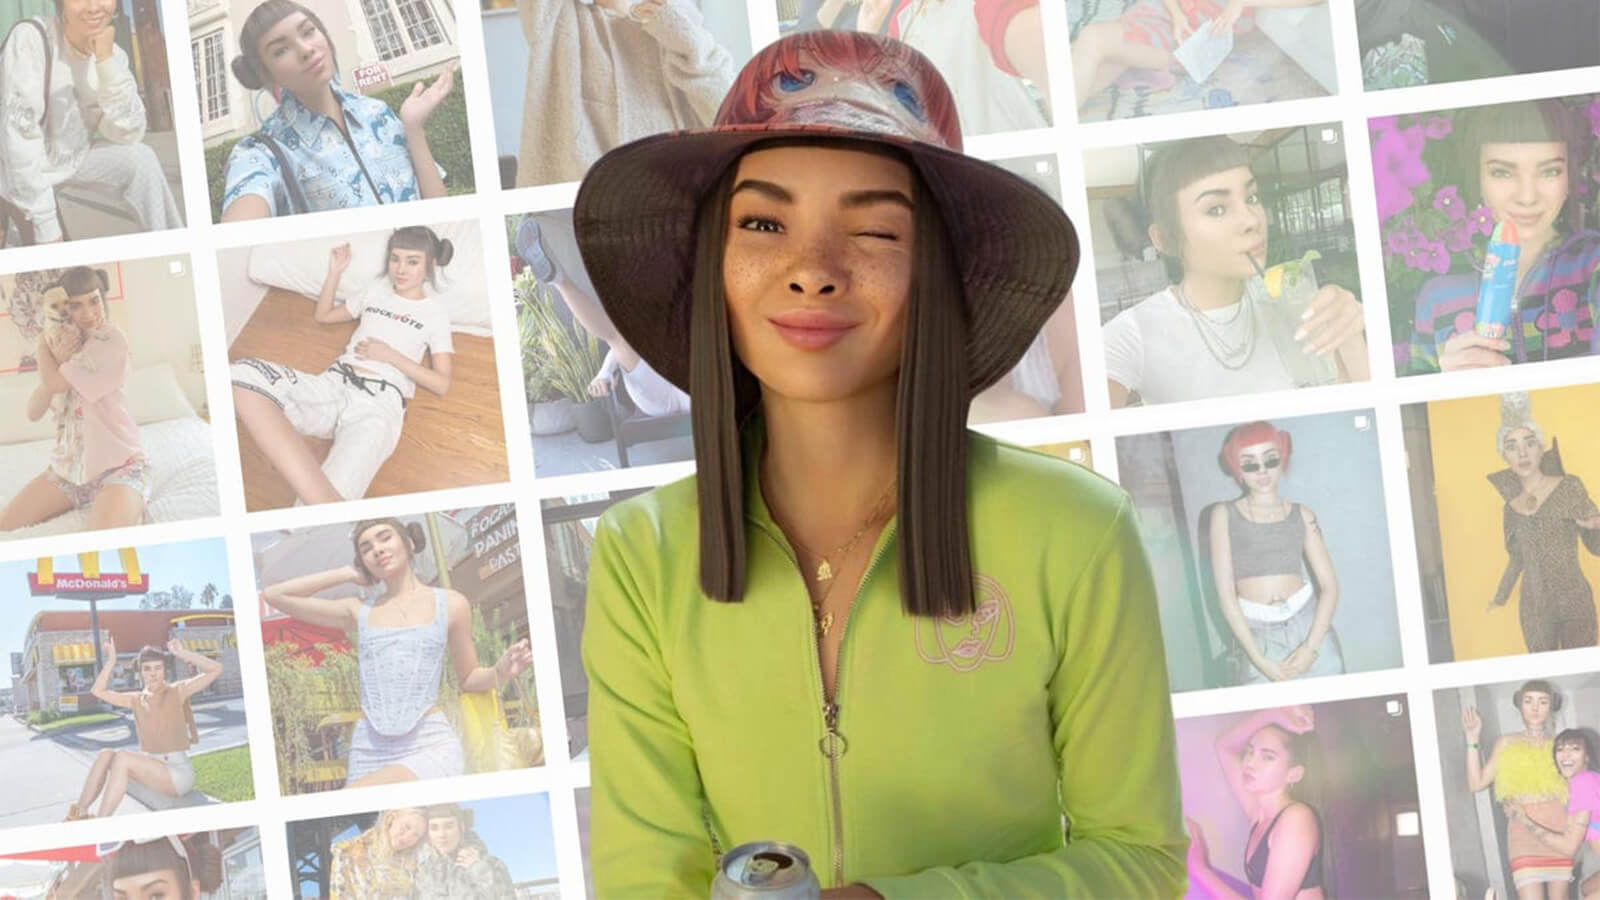 Lil Miquela a realistic avatar and virtual character